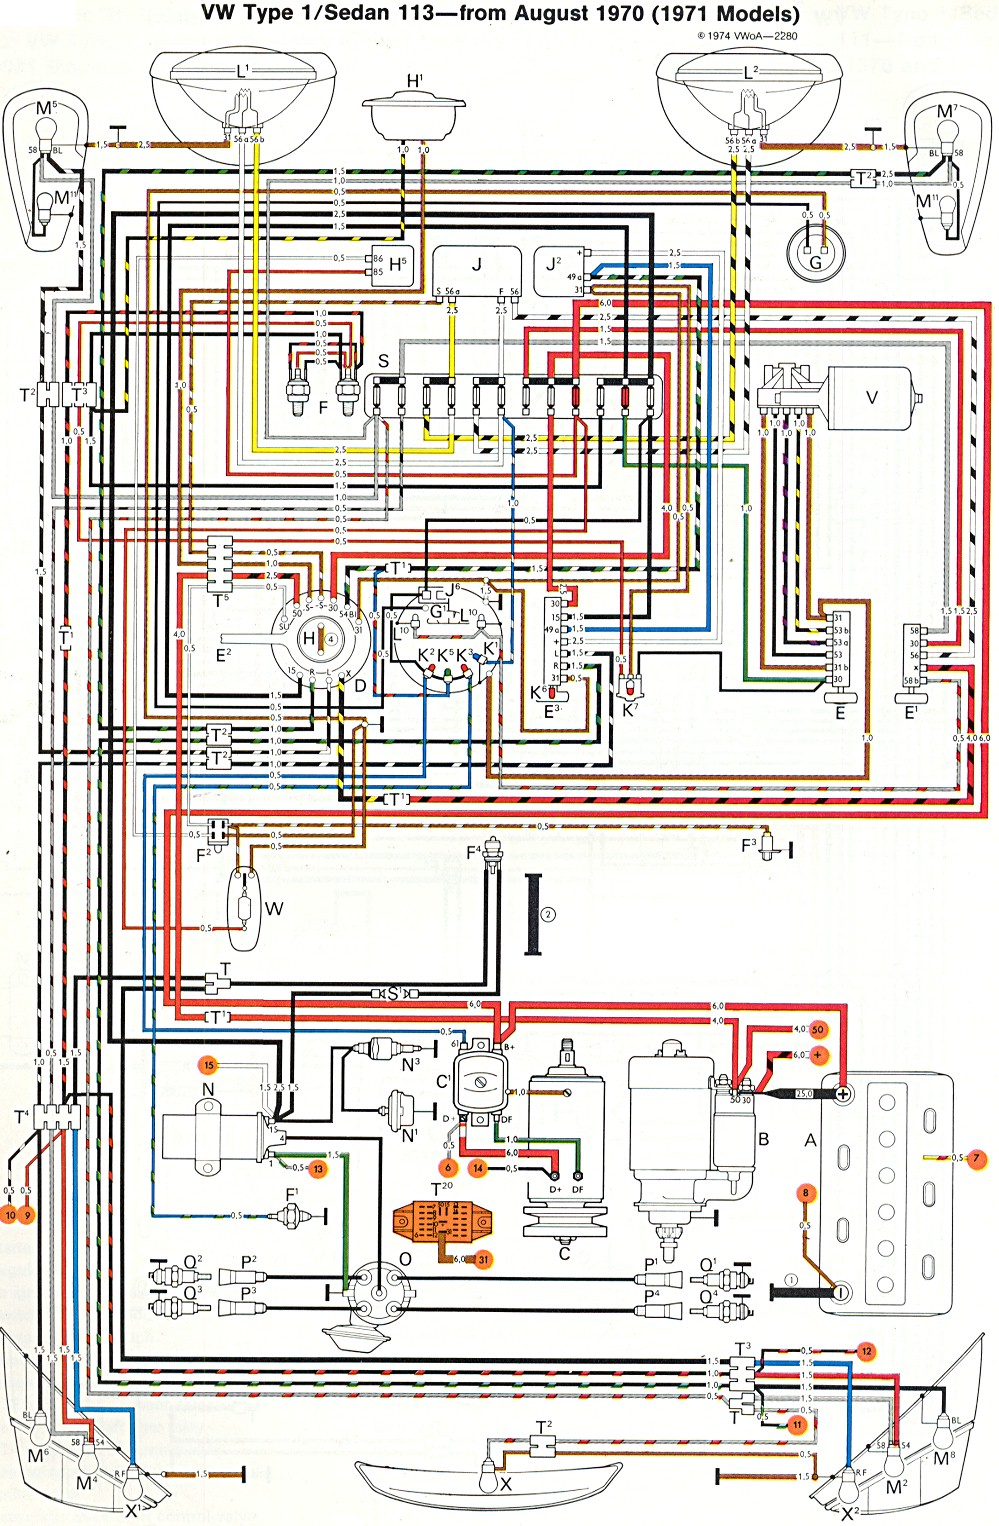 bug_super_71 vw wiring harness diagram cj7 wiring harness diagram \u2022 wiring wiring harness for 1967 vw beetle at gsmx.co